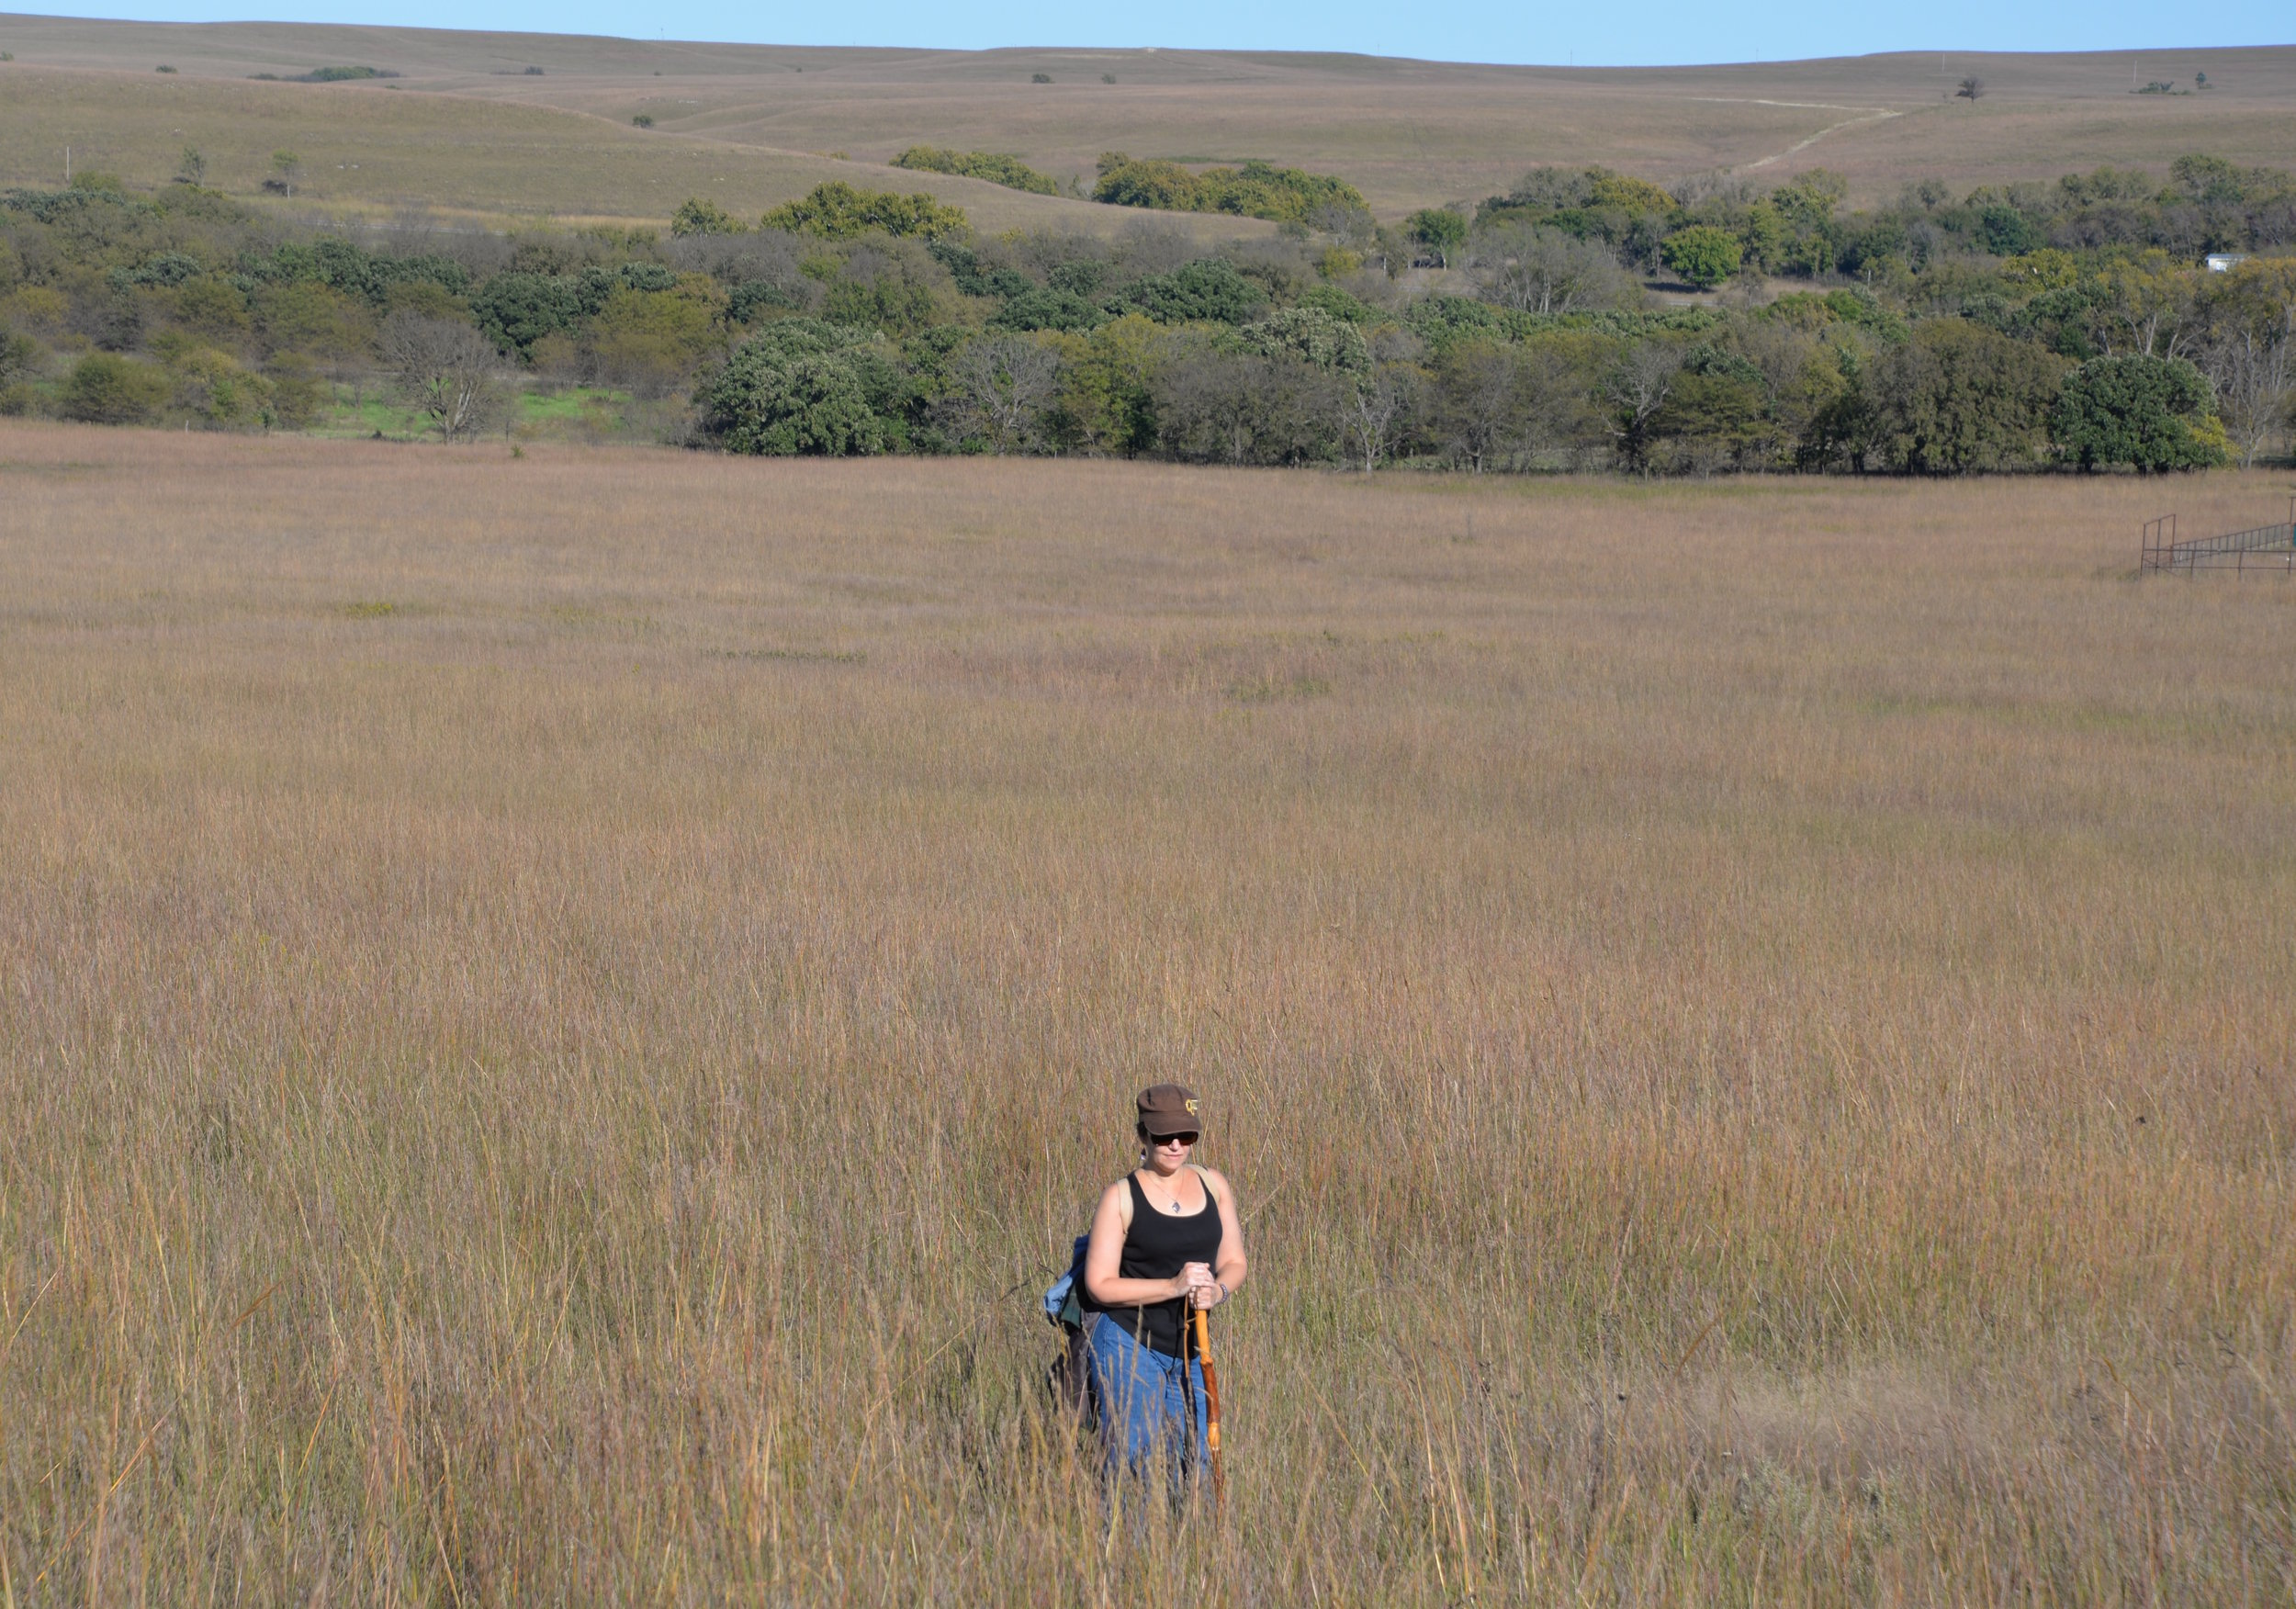 Hiking across the   Tallgrass Prairie National Preserve   in Chase County, Kansas.